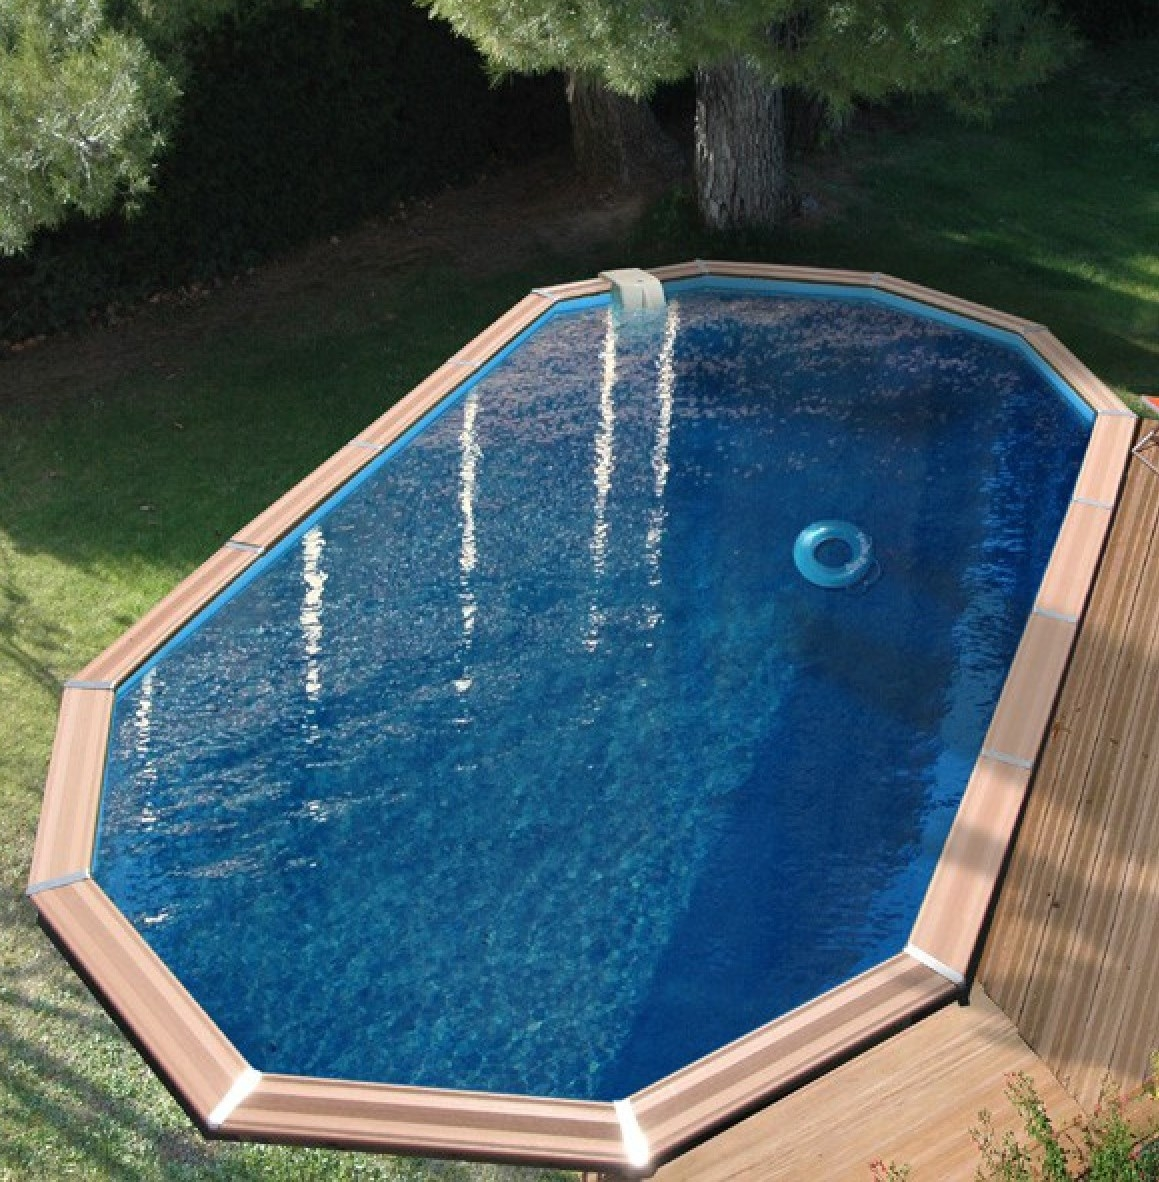 Piscine bois waterclip myconos 9m55 for Piscine waterclip